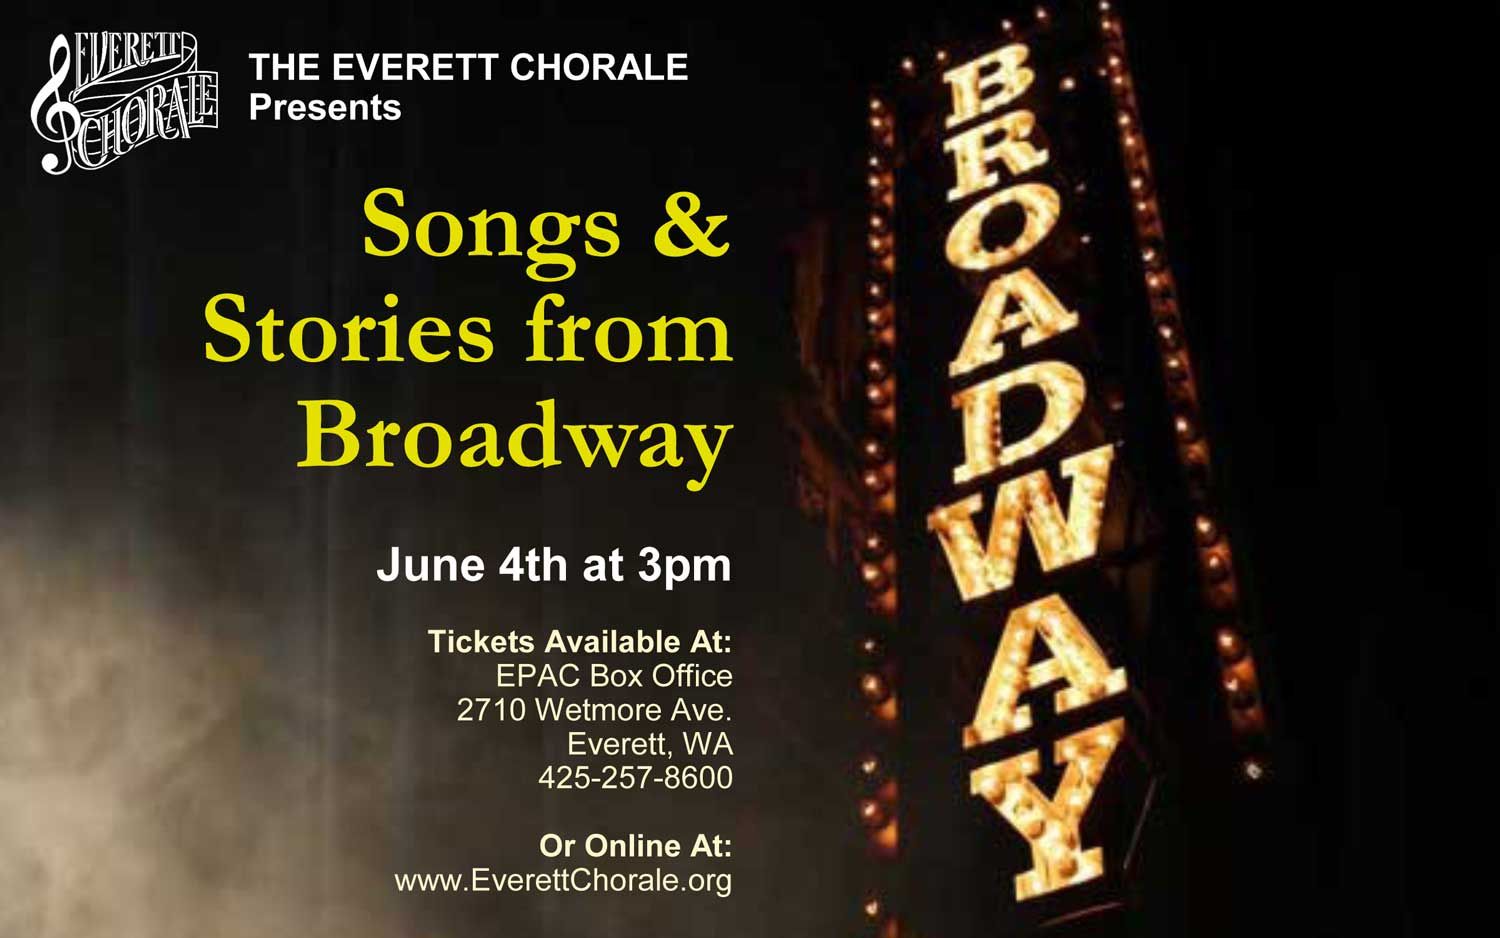 Songs & Stories from Broadway